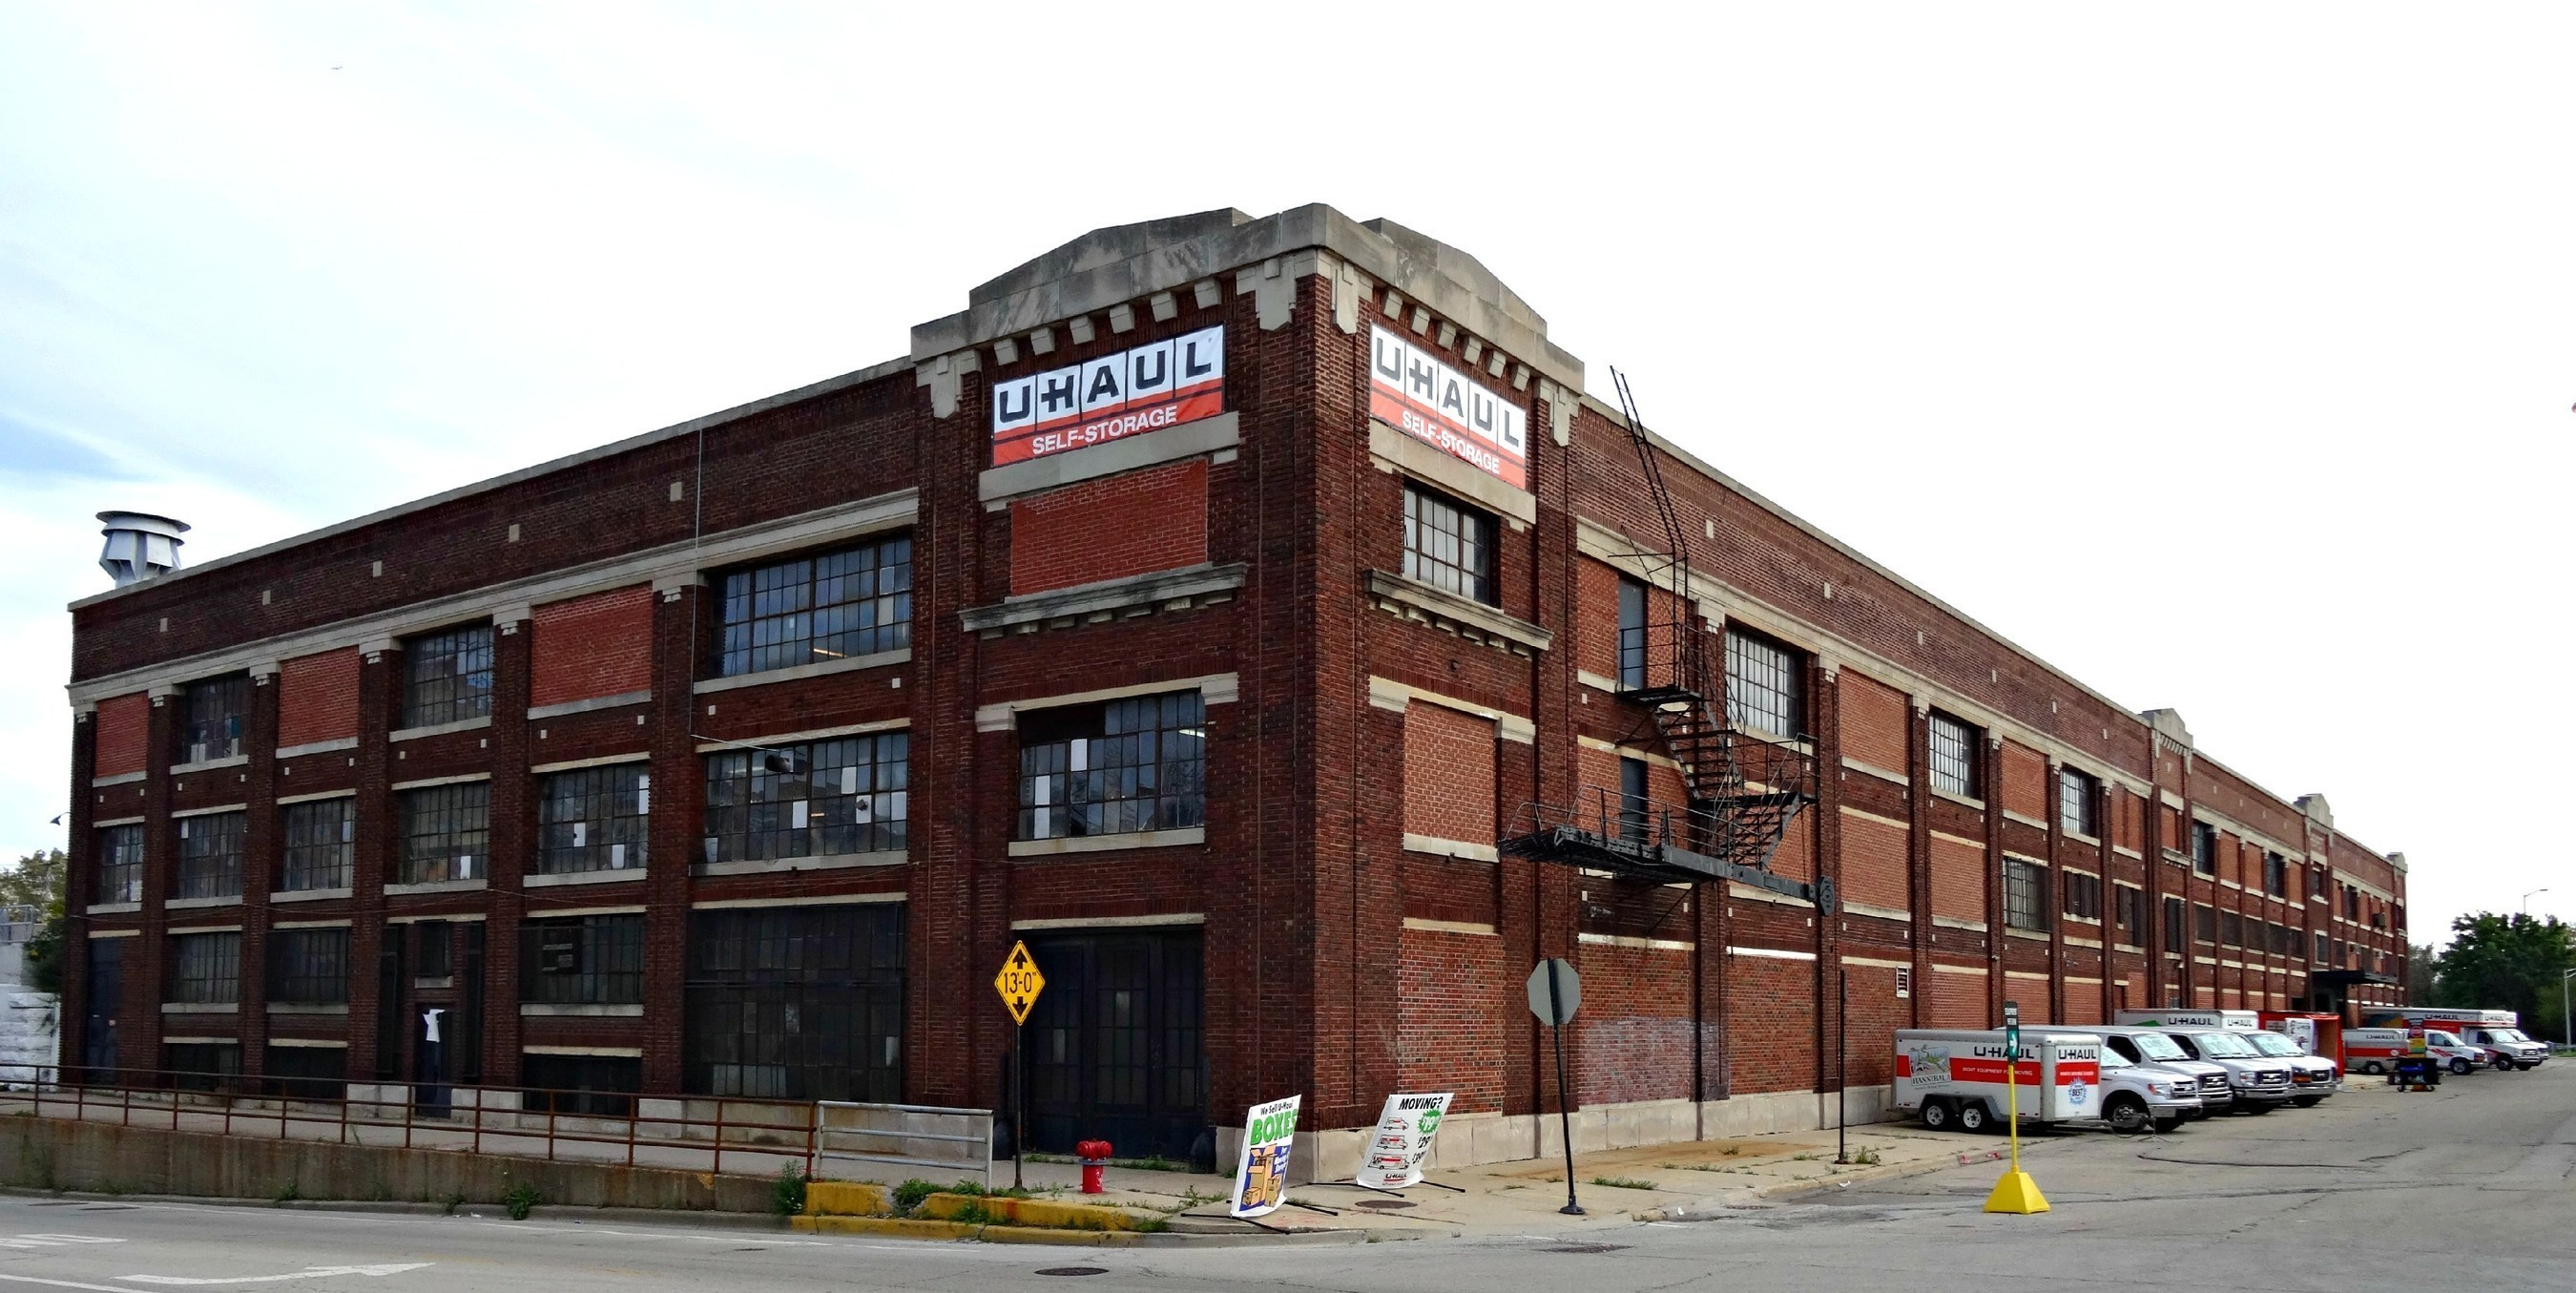 U-Haul Delivers on Need for Moving and Self-Storage in Chicago with Opening of New Facility